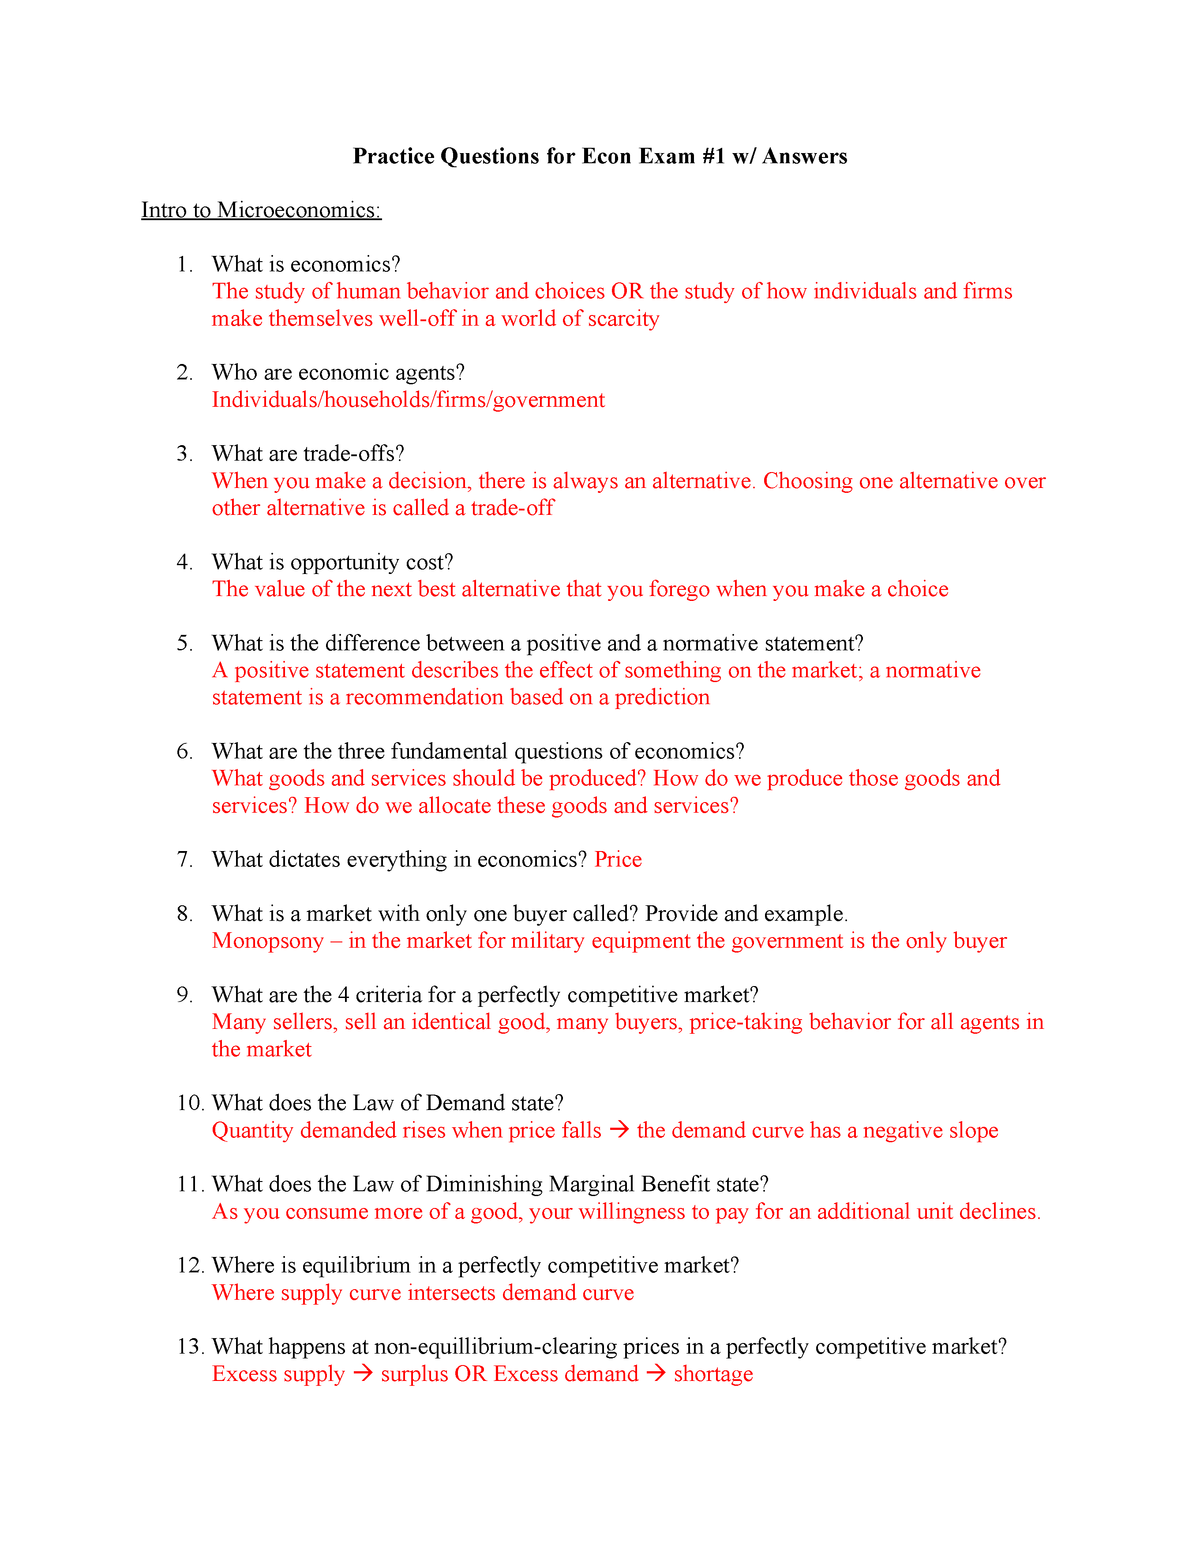 Practice Questions for Econ Exam #1 - Introduction To Microeconomics